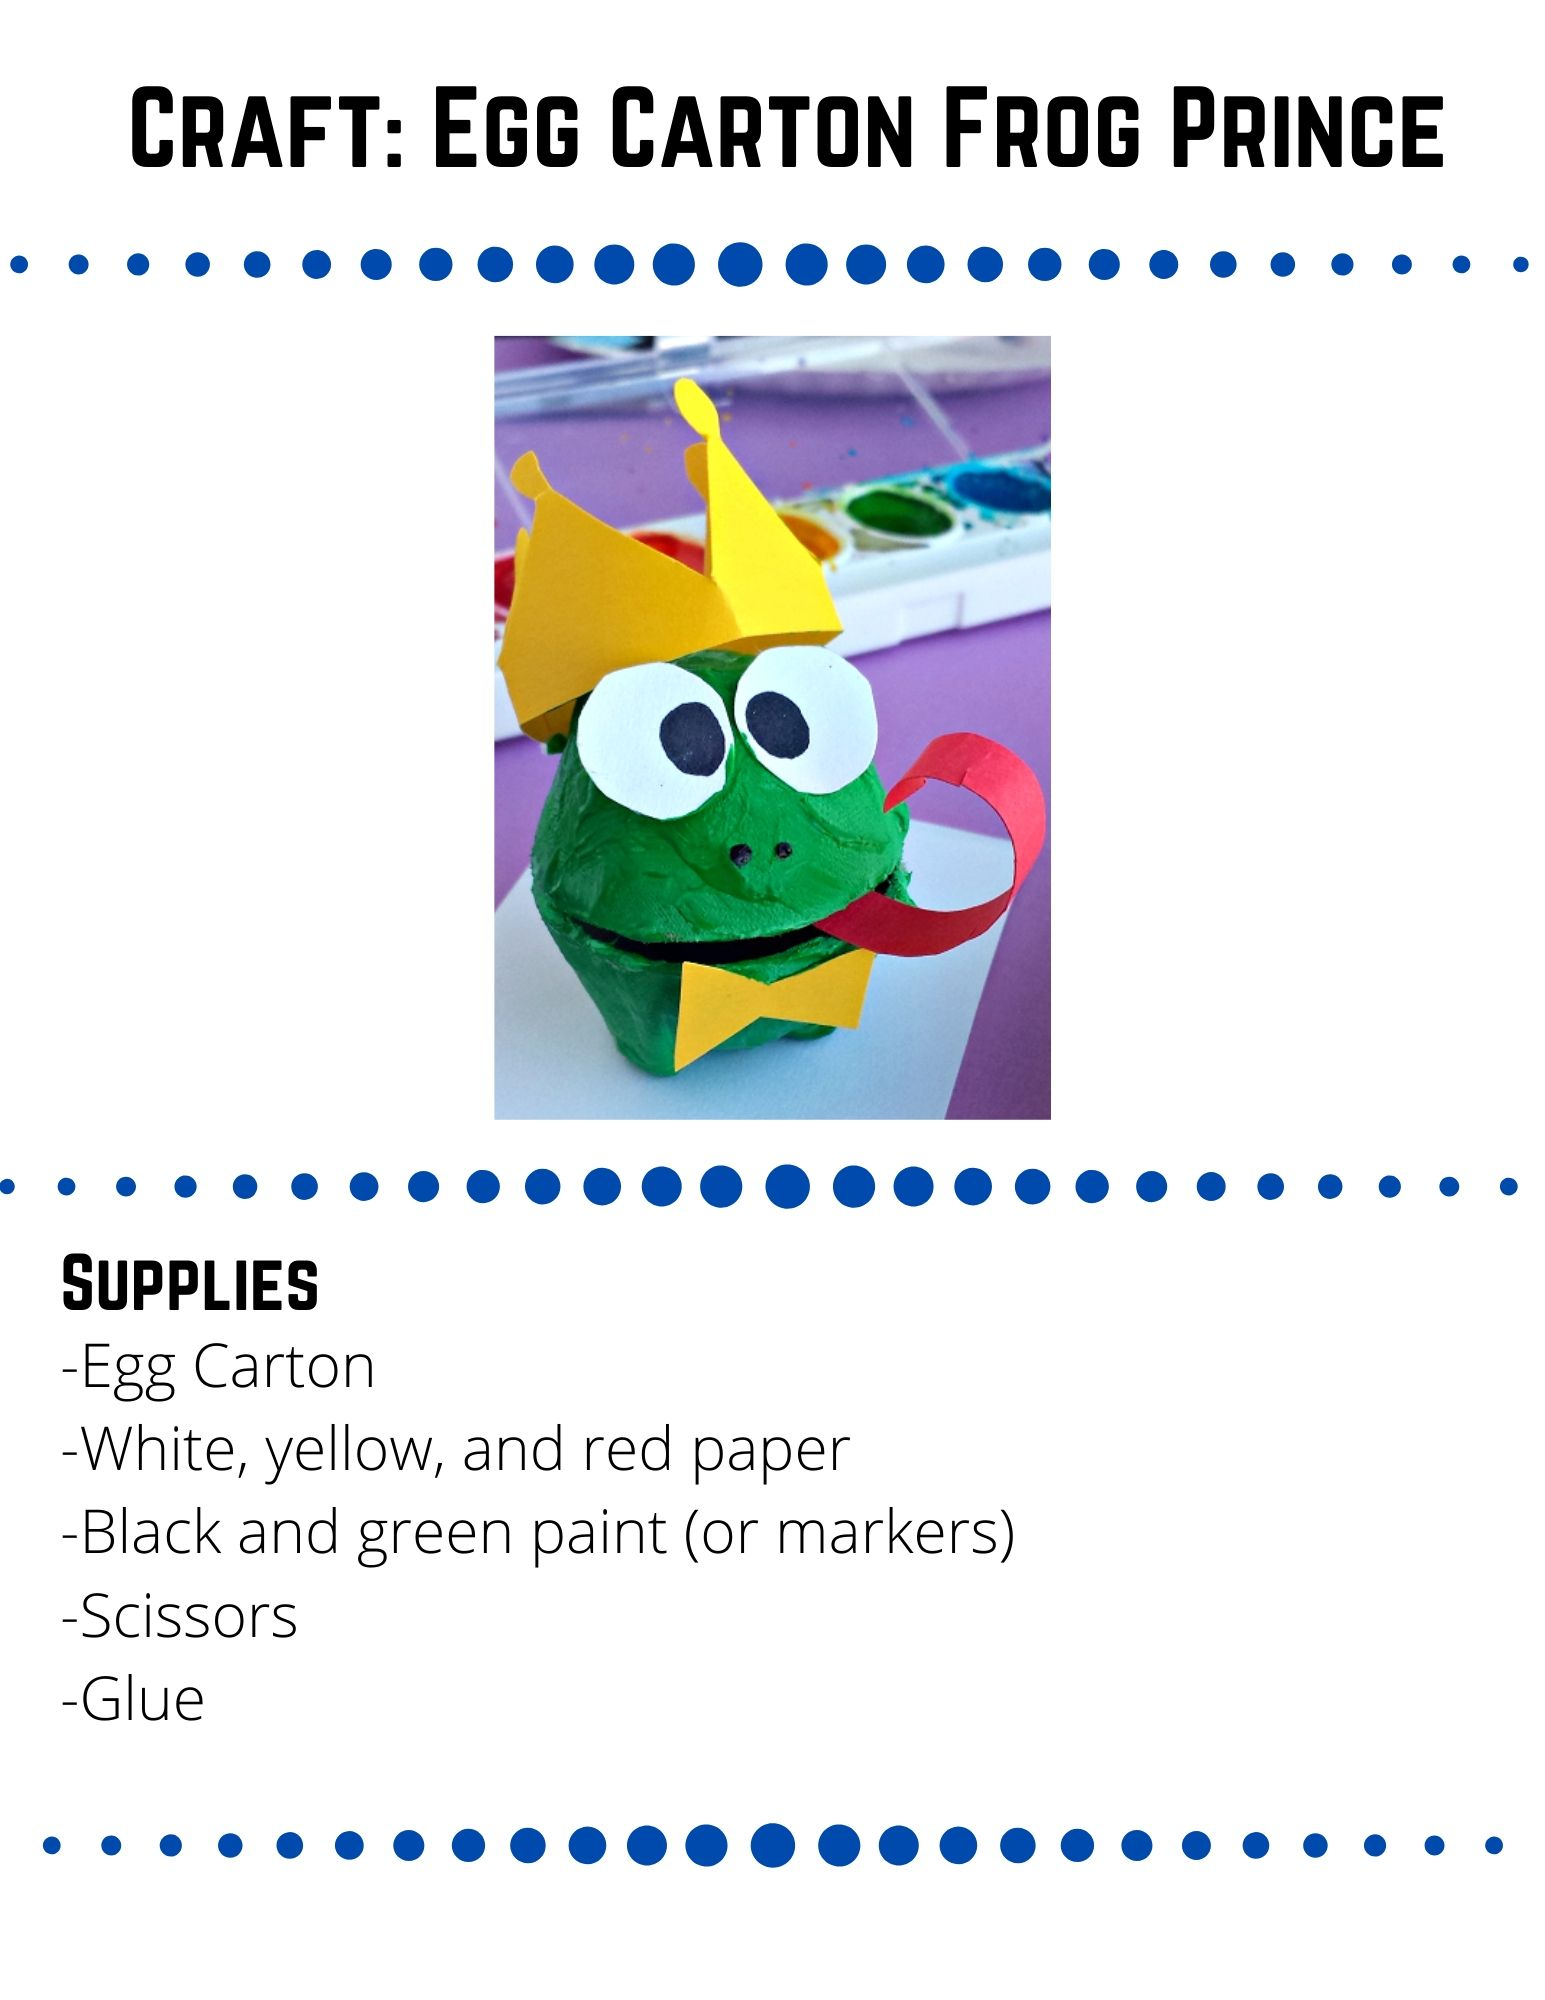 Craft: Egg Carton Frog Prince.-Egg Carton -White, yellow, and red paper -Black and green paint (or markers) -Scissors -Glue. Cut 2 cups from a recycled egg carton and trim them so they fit together and lay flat. Paint or color the egg carton cups green and let them dry. Cut out a  tongue, eyes, a bow tie, a crown, and any other accessories you would like on your frog. Dip the end of your paintbrush in black paint and use it to put two dots of black paint under the eyes. Set the egg carton cups on top of each other (you can glue them together of leave them apart).  Glue all of the other pieces on your frog. Source: https://www.craftymorning.com/egg-carton-frog-prince-craft-for-kids/